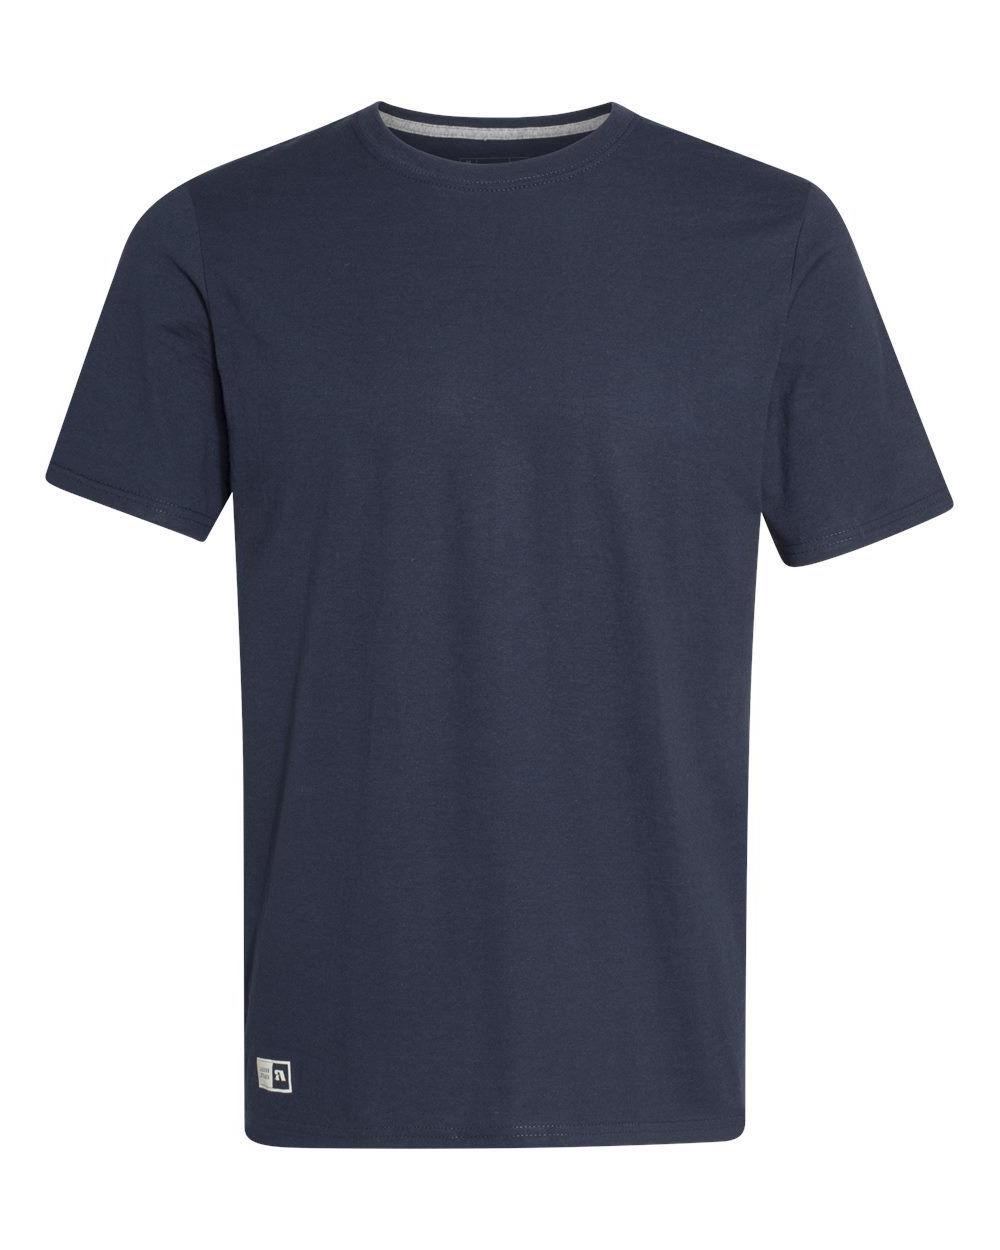 Russell Athletic Youth Essential Sports T-Shirt,